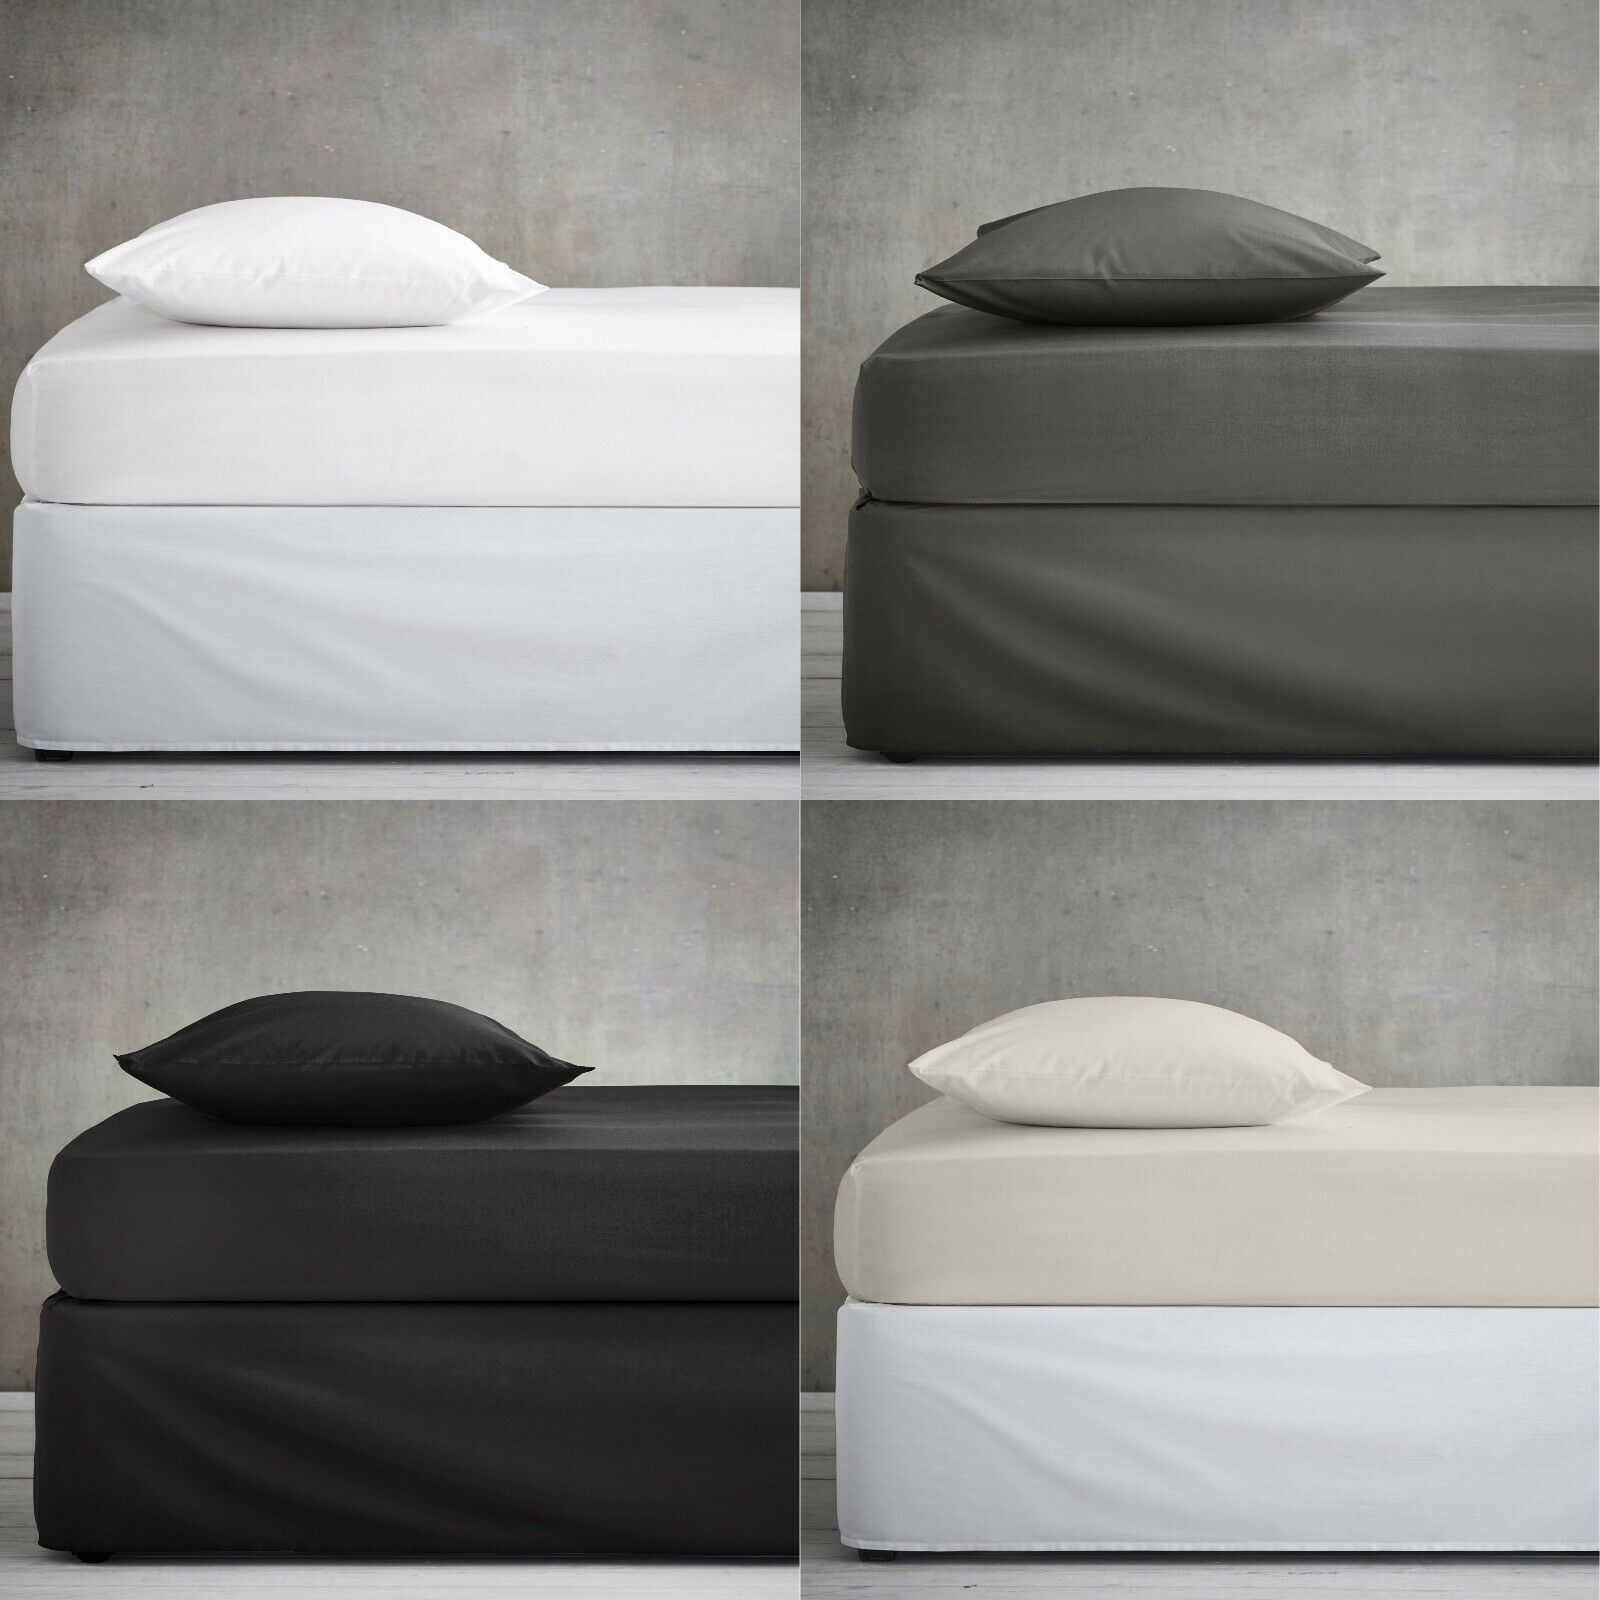 4FT Double Small Polycotton Fitted Sheets,4FT mattress Protectors OR Pillowcase